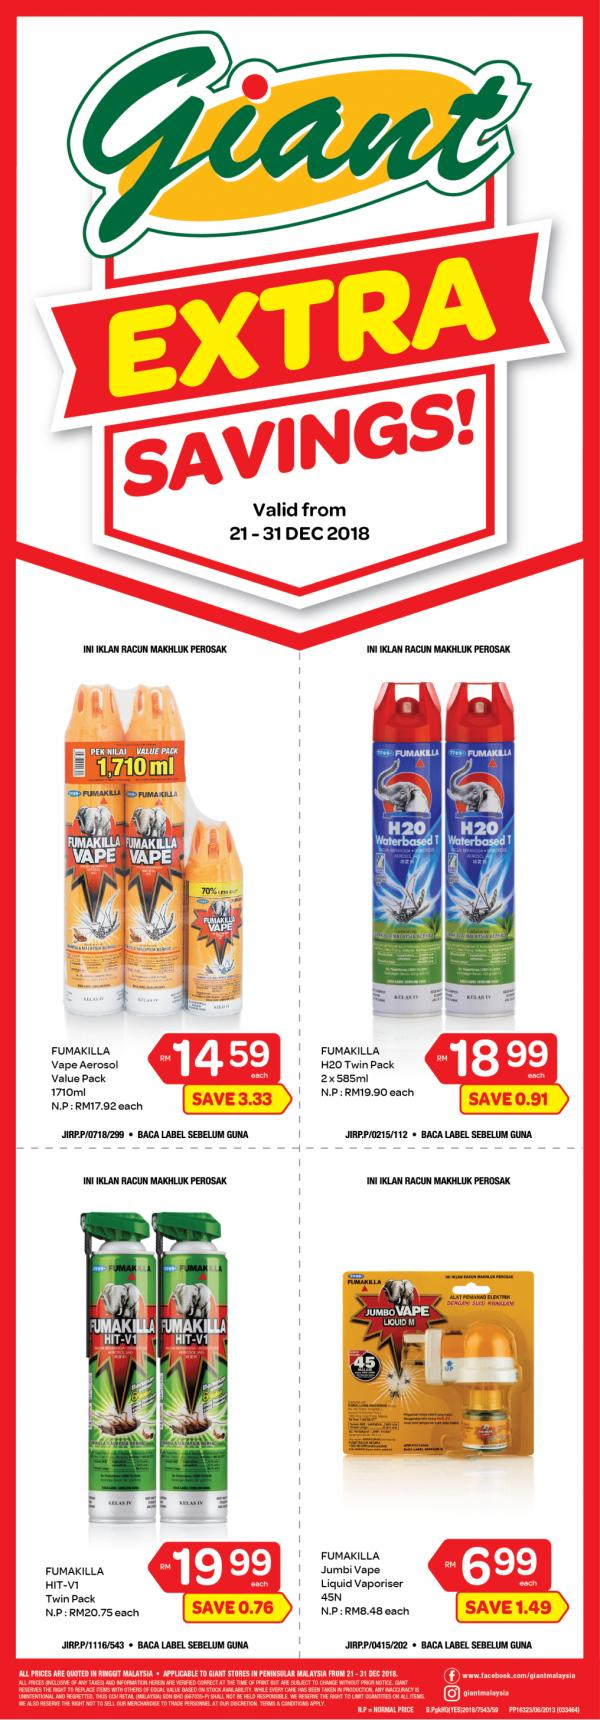 Giant Fumakilla Promotion (21 December 2018 - 31 December 2018)